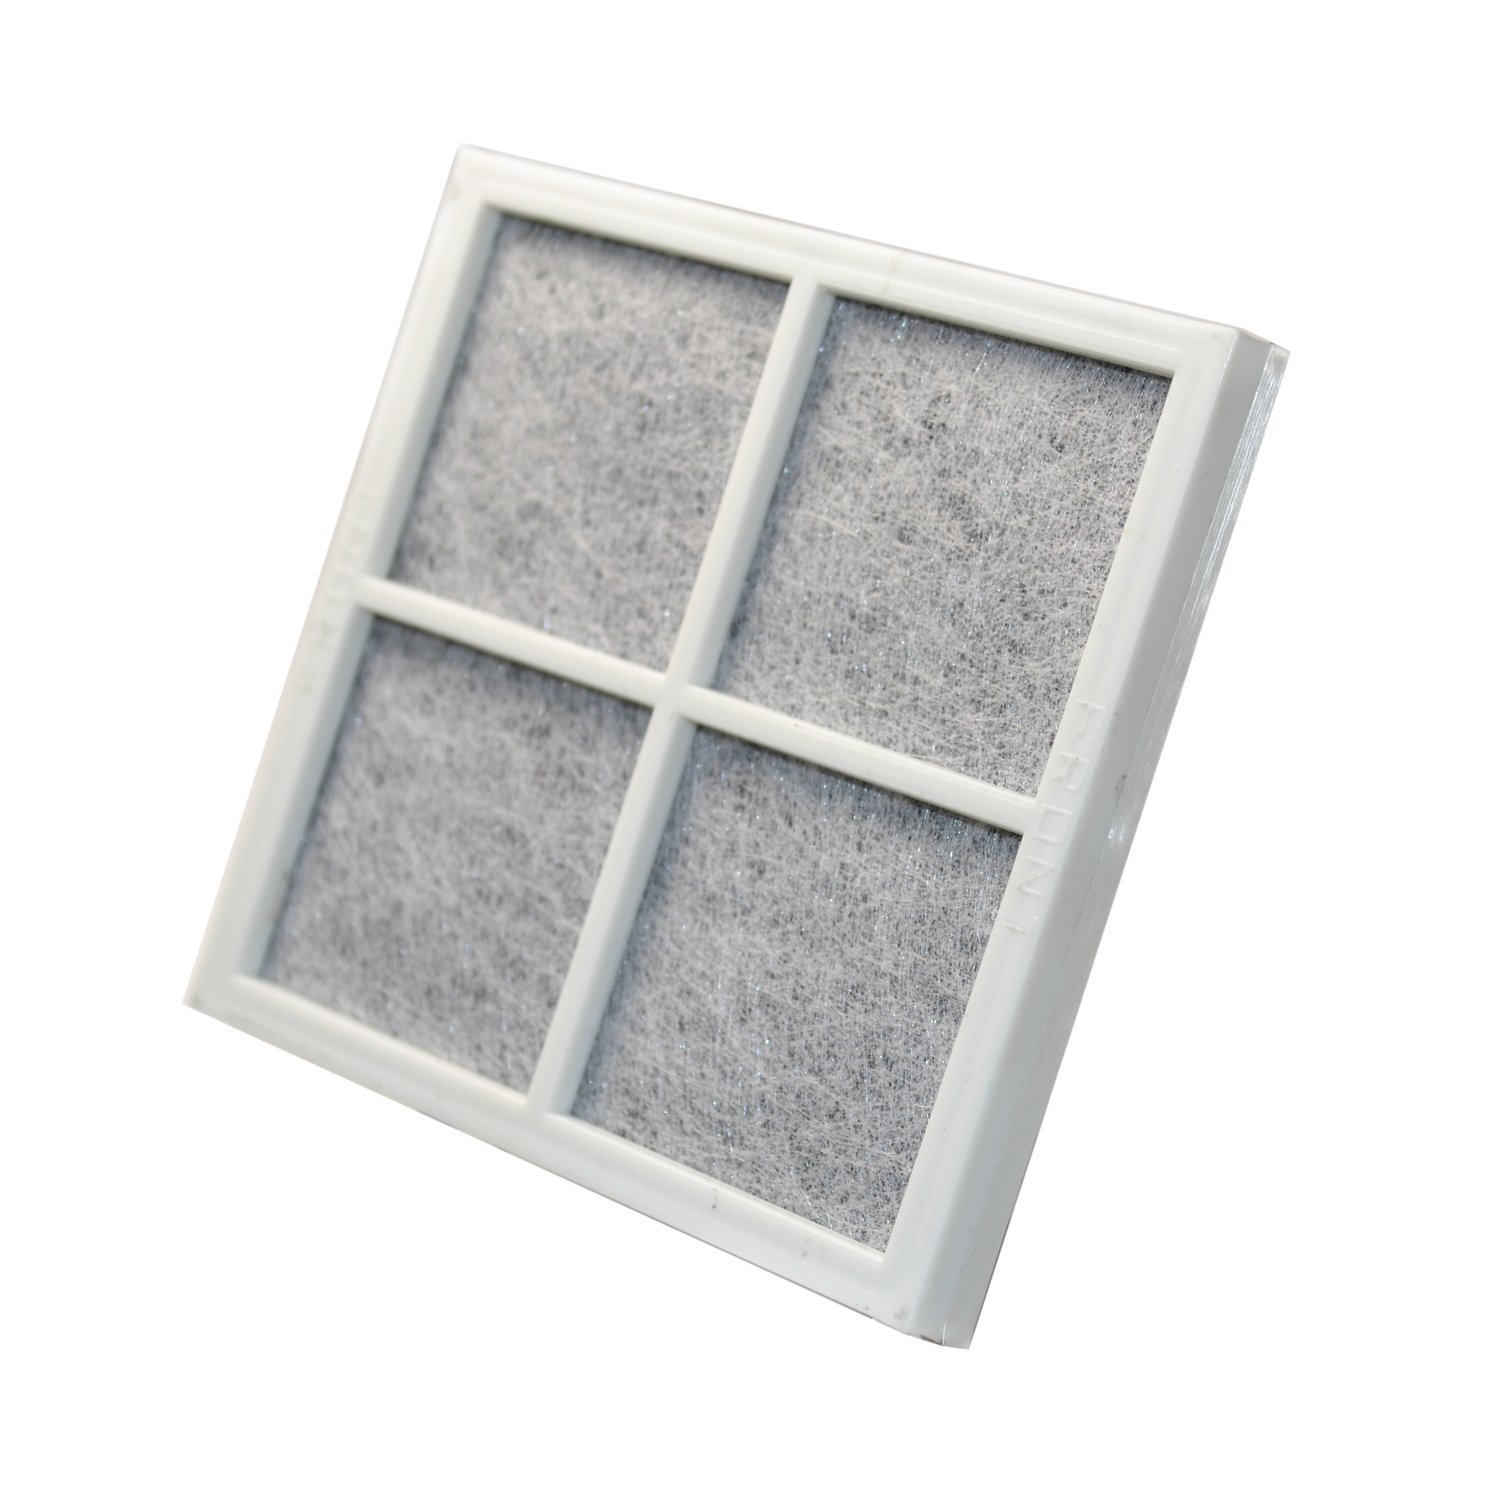 HQRP Air Filter for Kenmore Elite Refrigerators 04609918000 / 469918 / 9918 Elite CleanFlow Replacement + HQRP Coaster